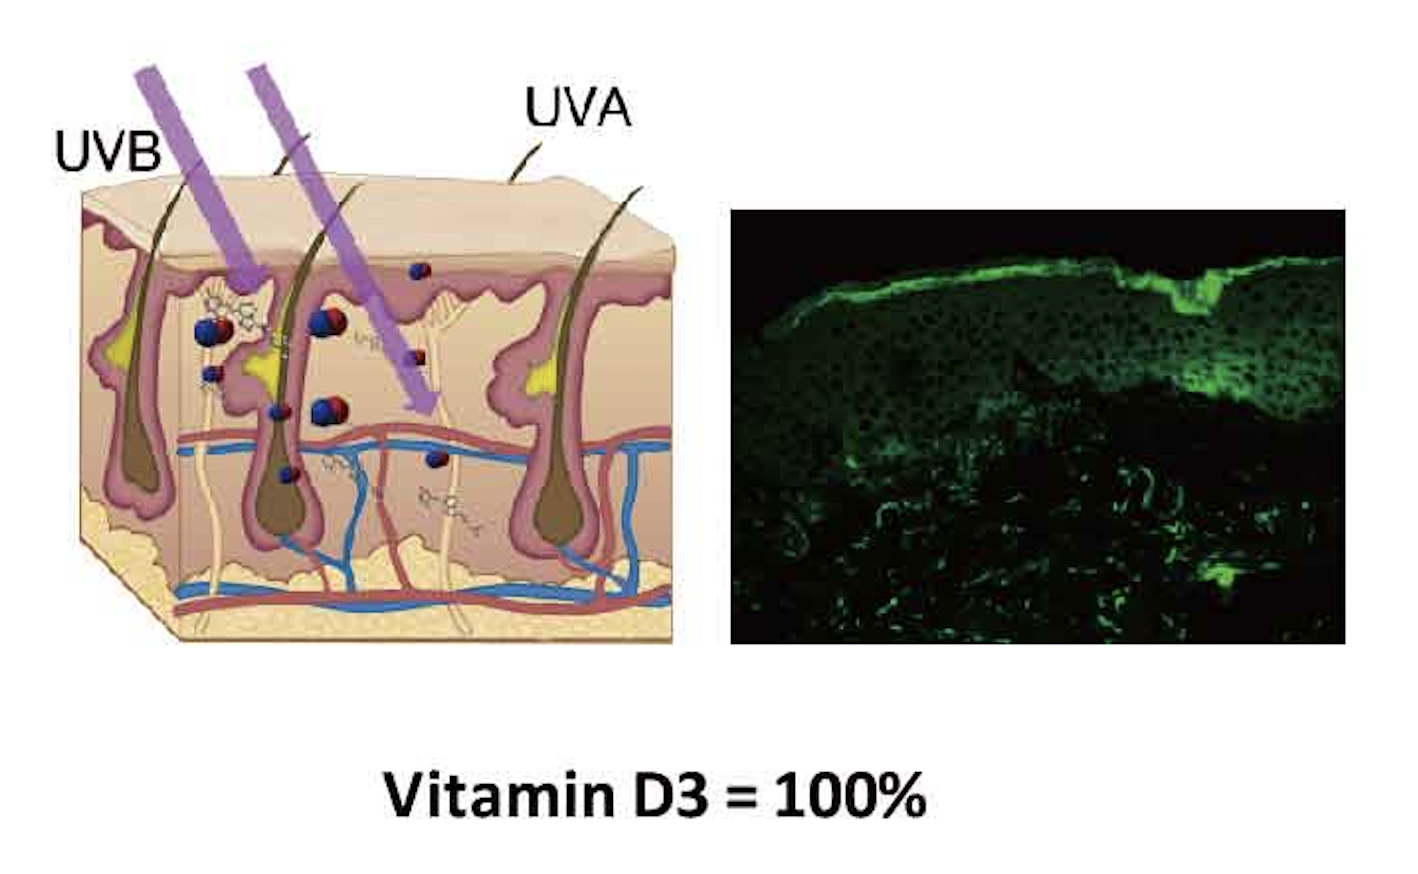 Under normal circumstances UV radiation interacts with the skin to produce Vitamin D3 and Nitric Oxide. UV-B is responsible for the formation of Vitamin D3 and UV-A for the production of Nitric Oxide shown in Green above.